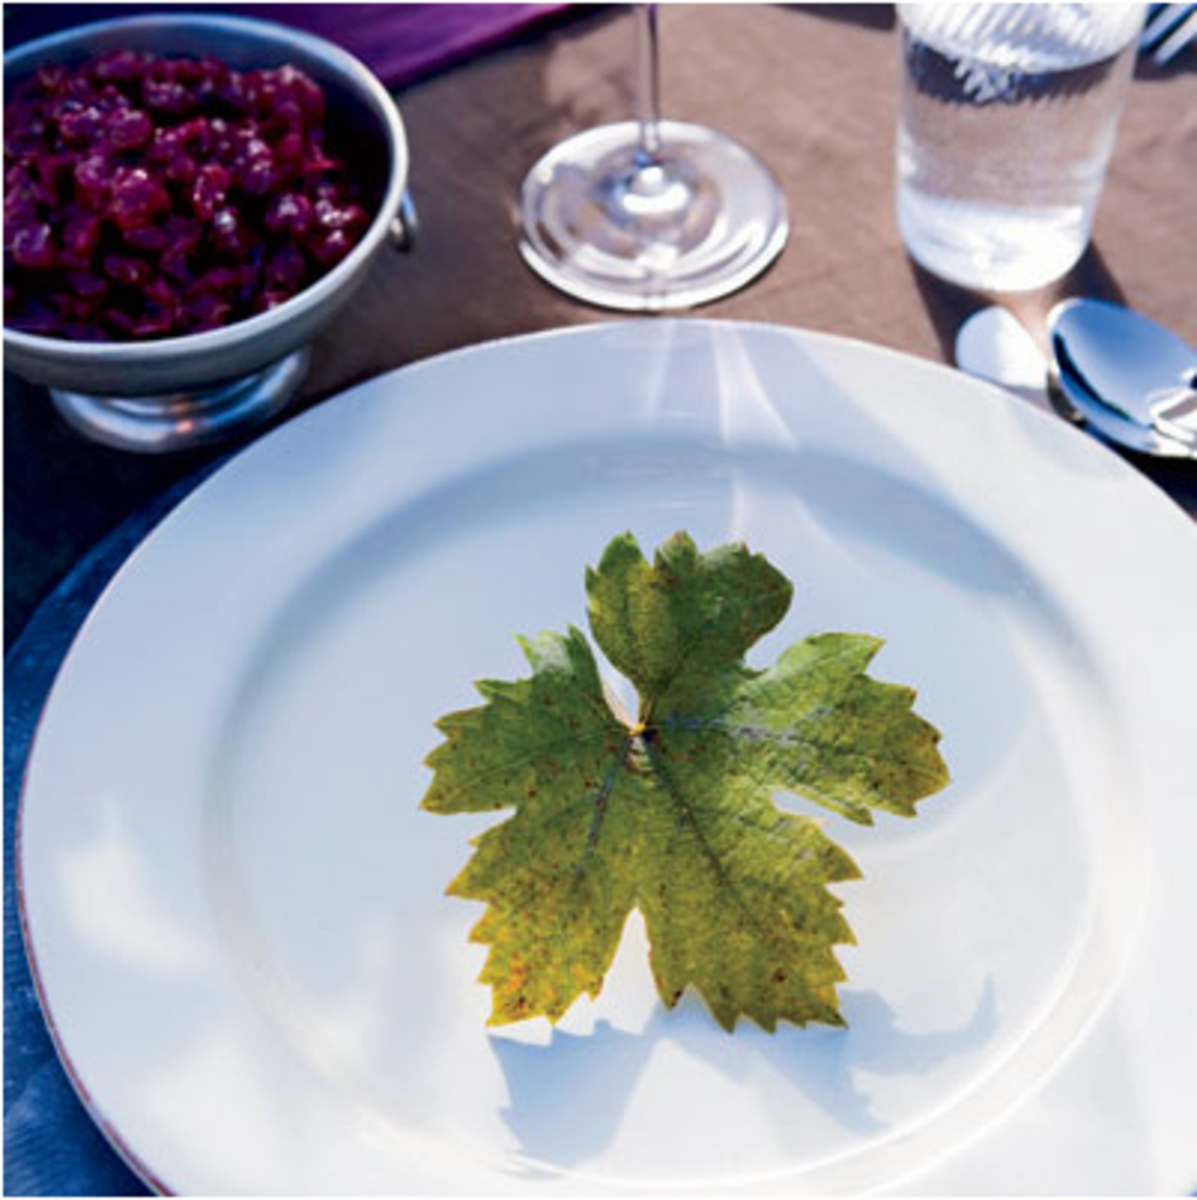 A vineyard leaf decorates plate